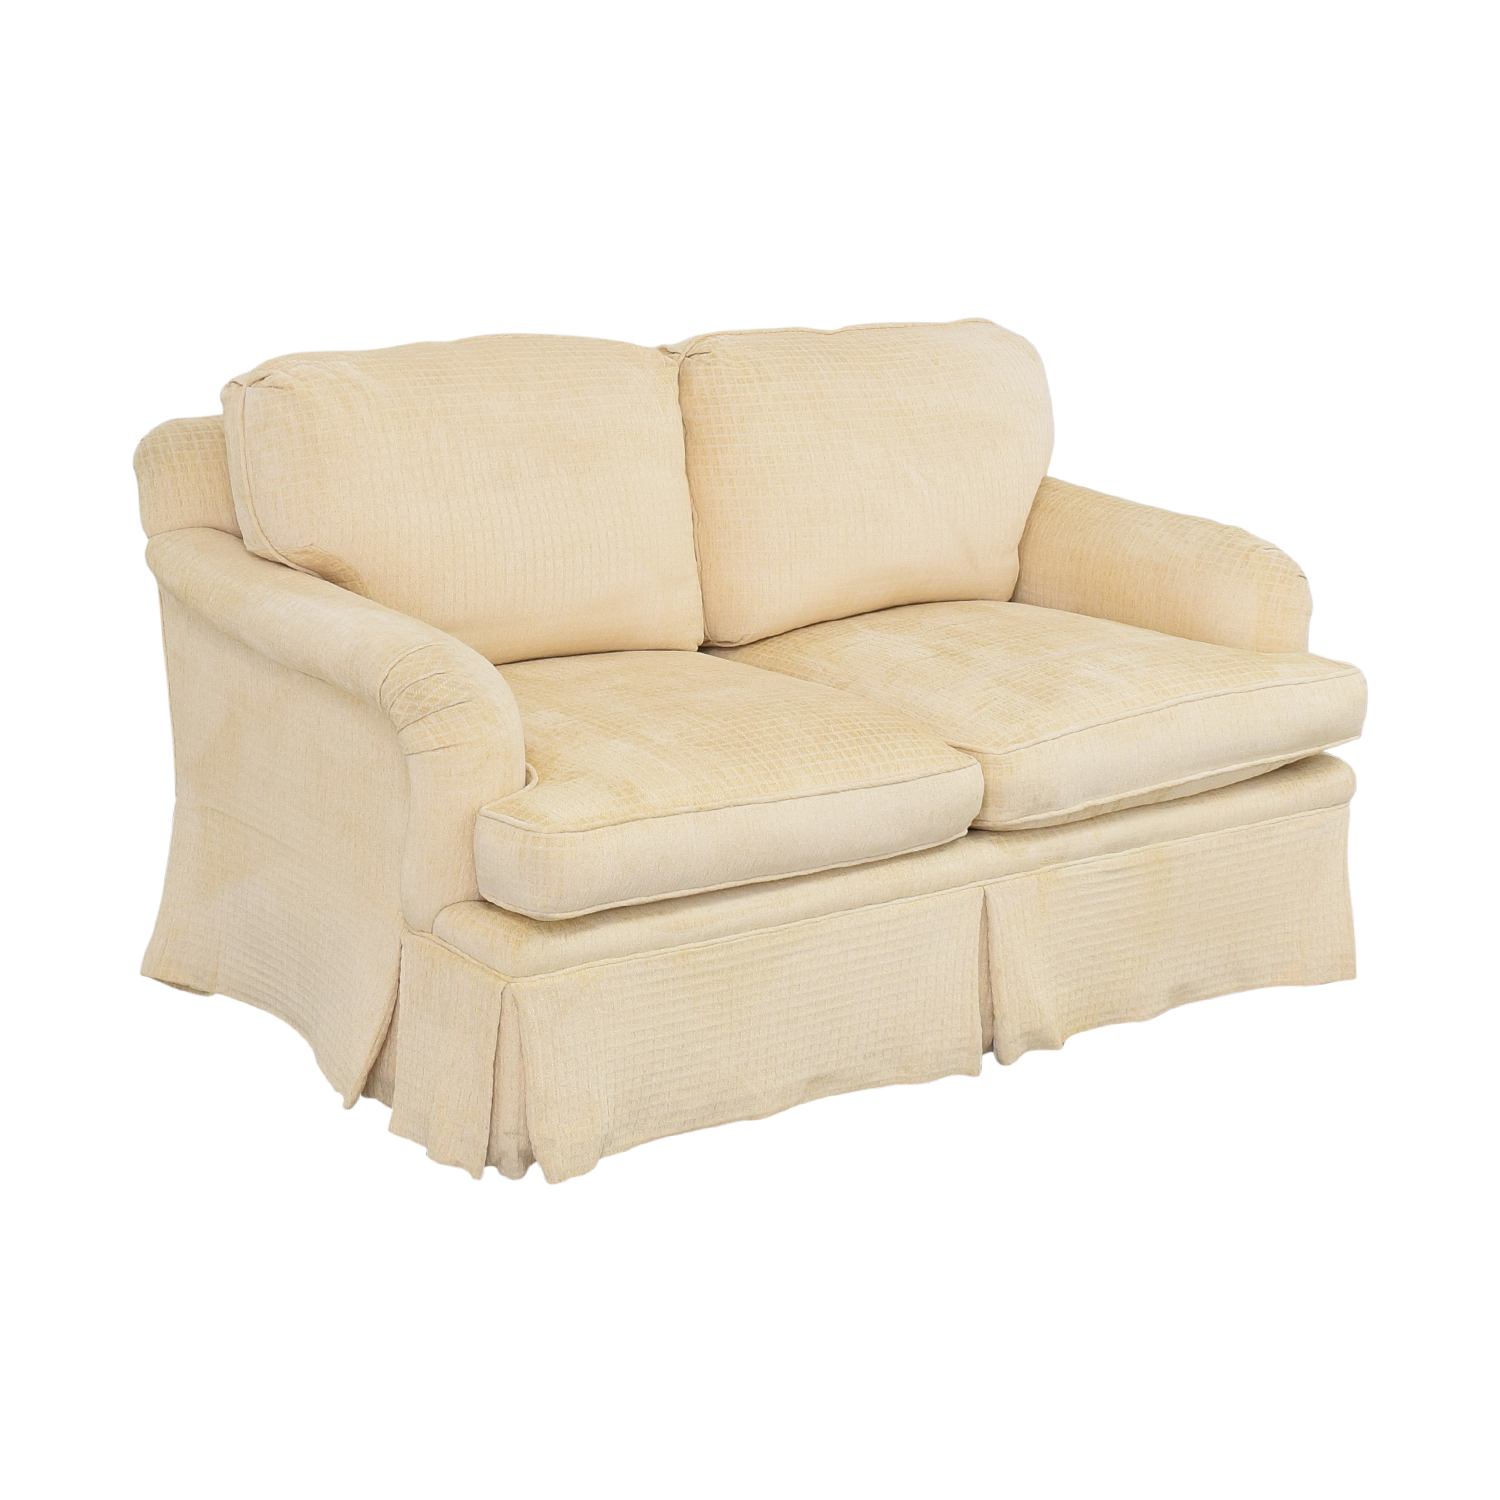 Mason-Art Upholstered Loveseat Mason-Art